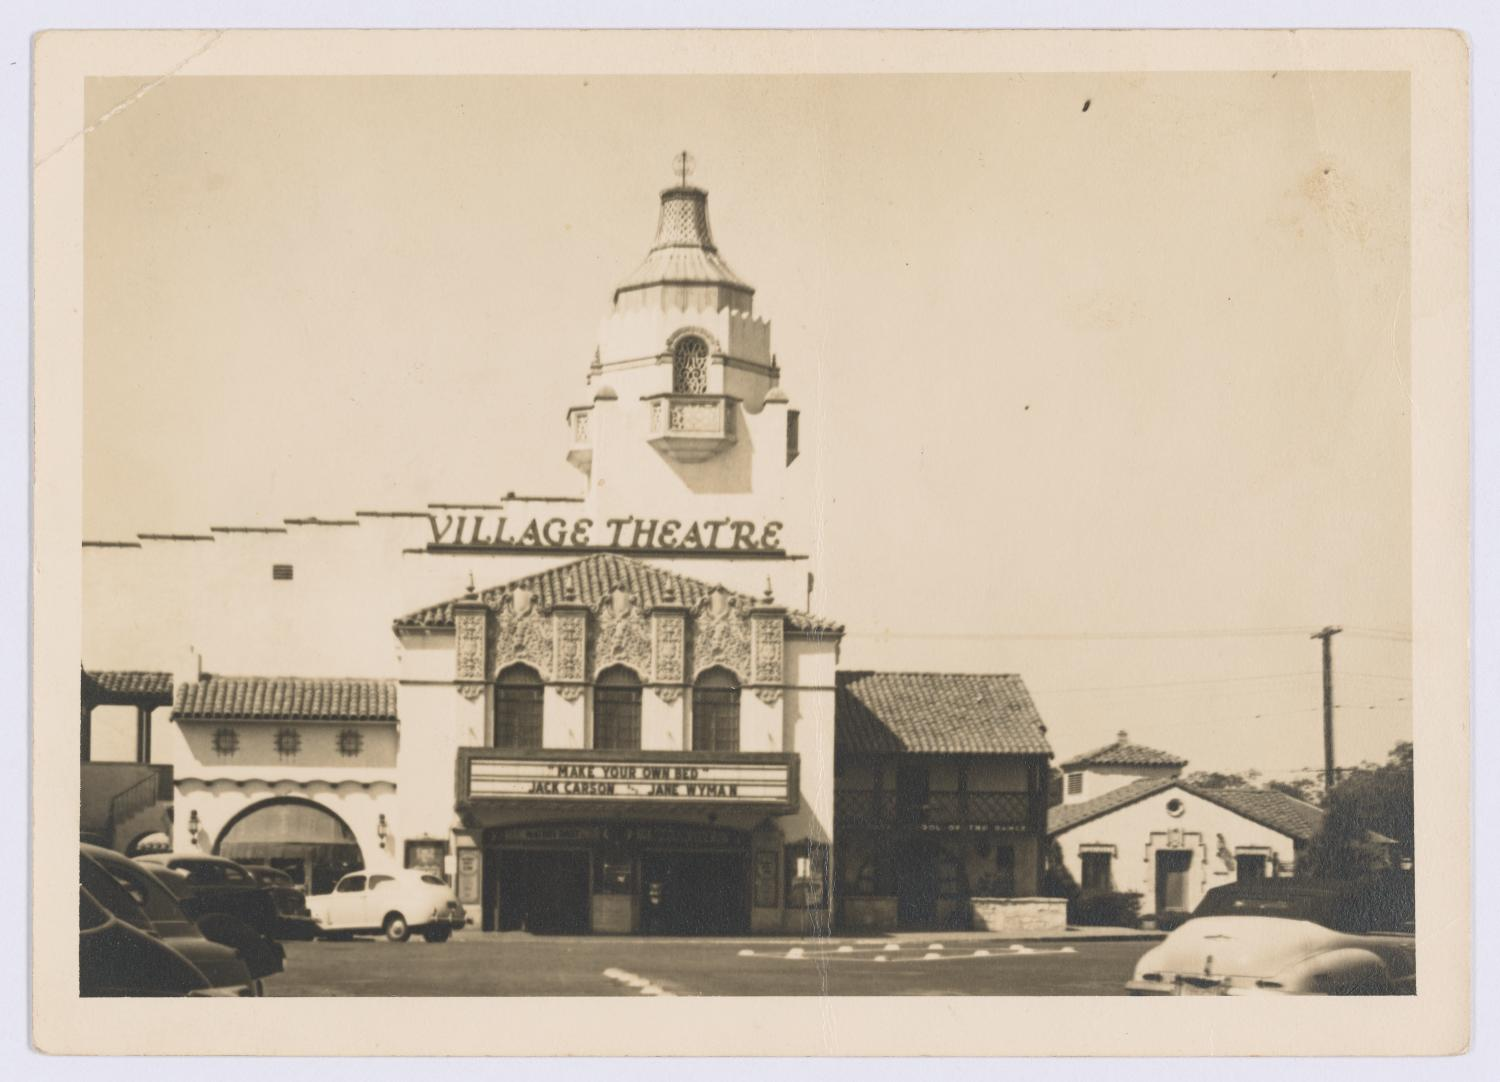 "[Exterior of Village Theatre], Photograph of the exterior of the Village Theatre in Dallas, Texas. The theater marquee advertises the film ""Make Your Own Bed"" with Jack Carson and Jane Wyman.,"